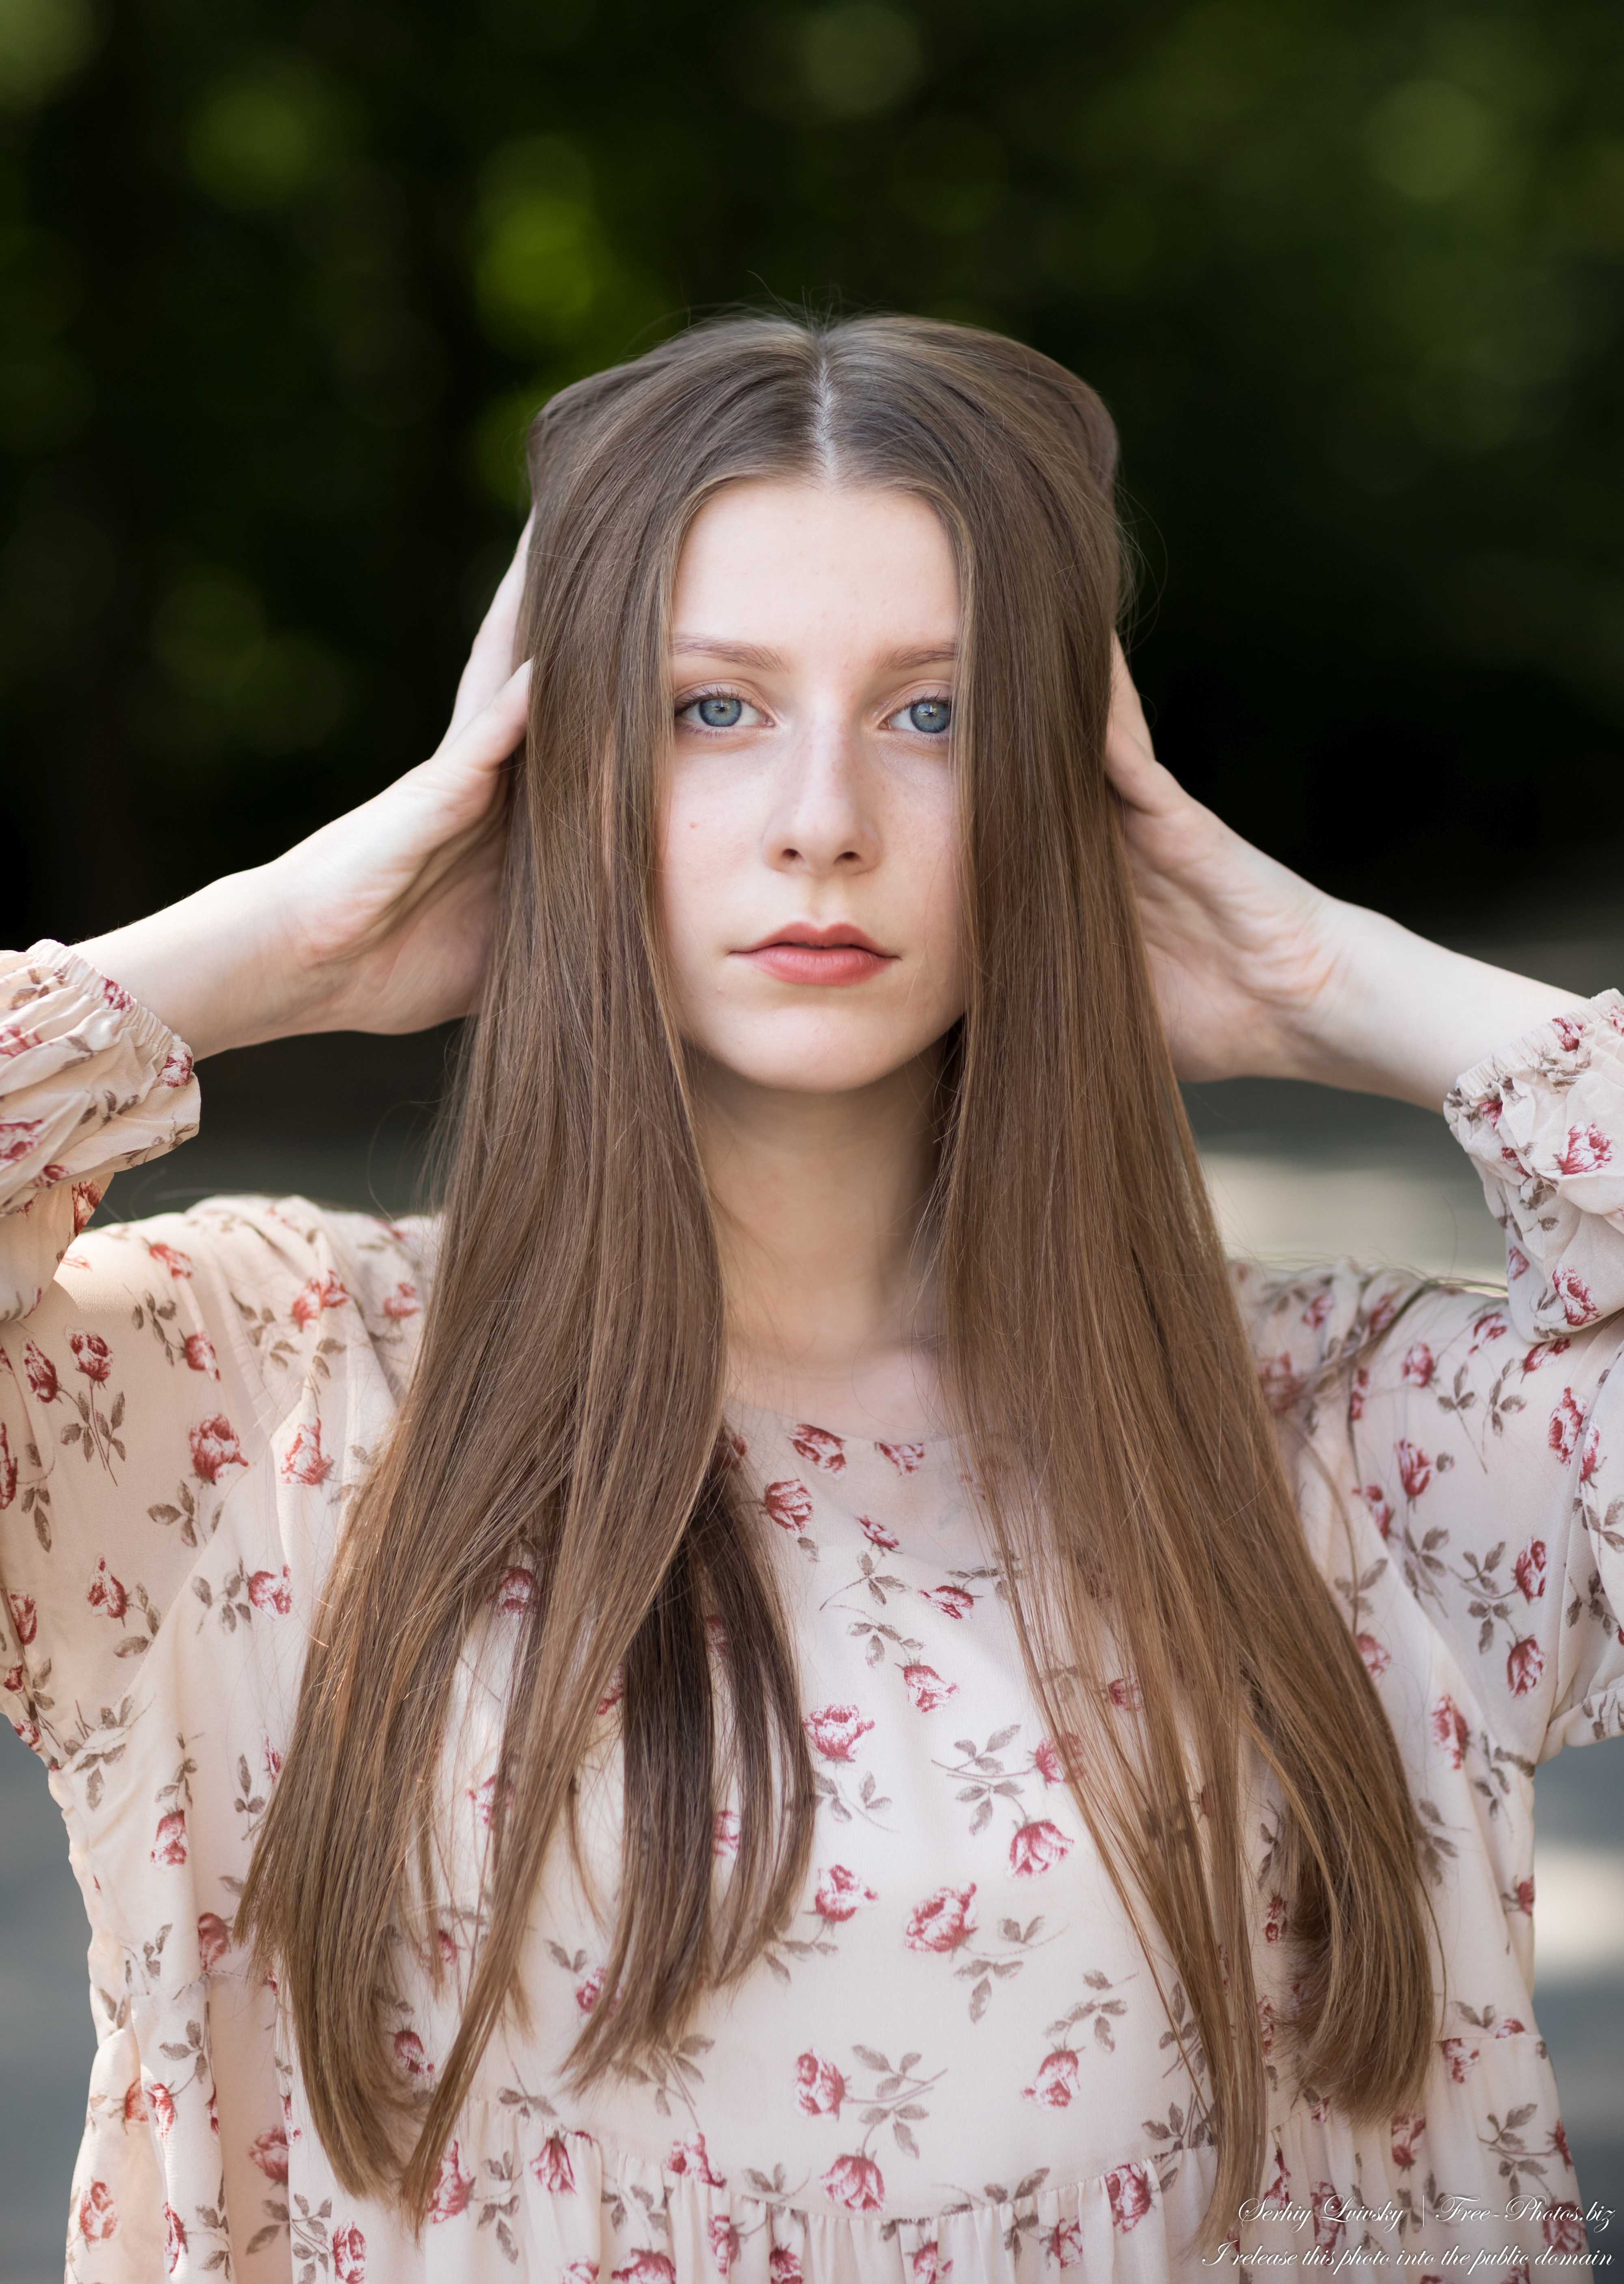 inna_an_18-year-old_natural_fair-haired_girl_photographed_in_july_2020_13